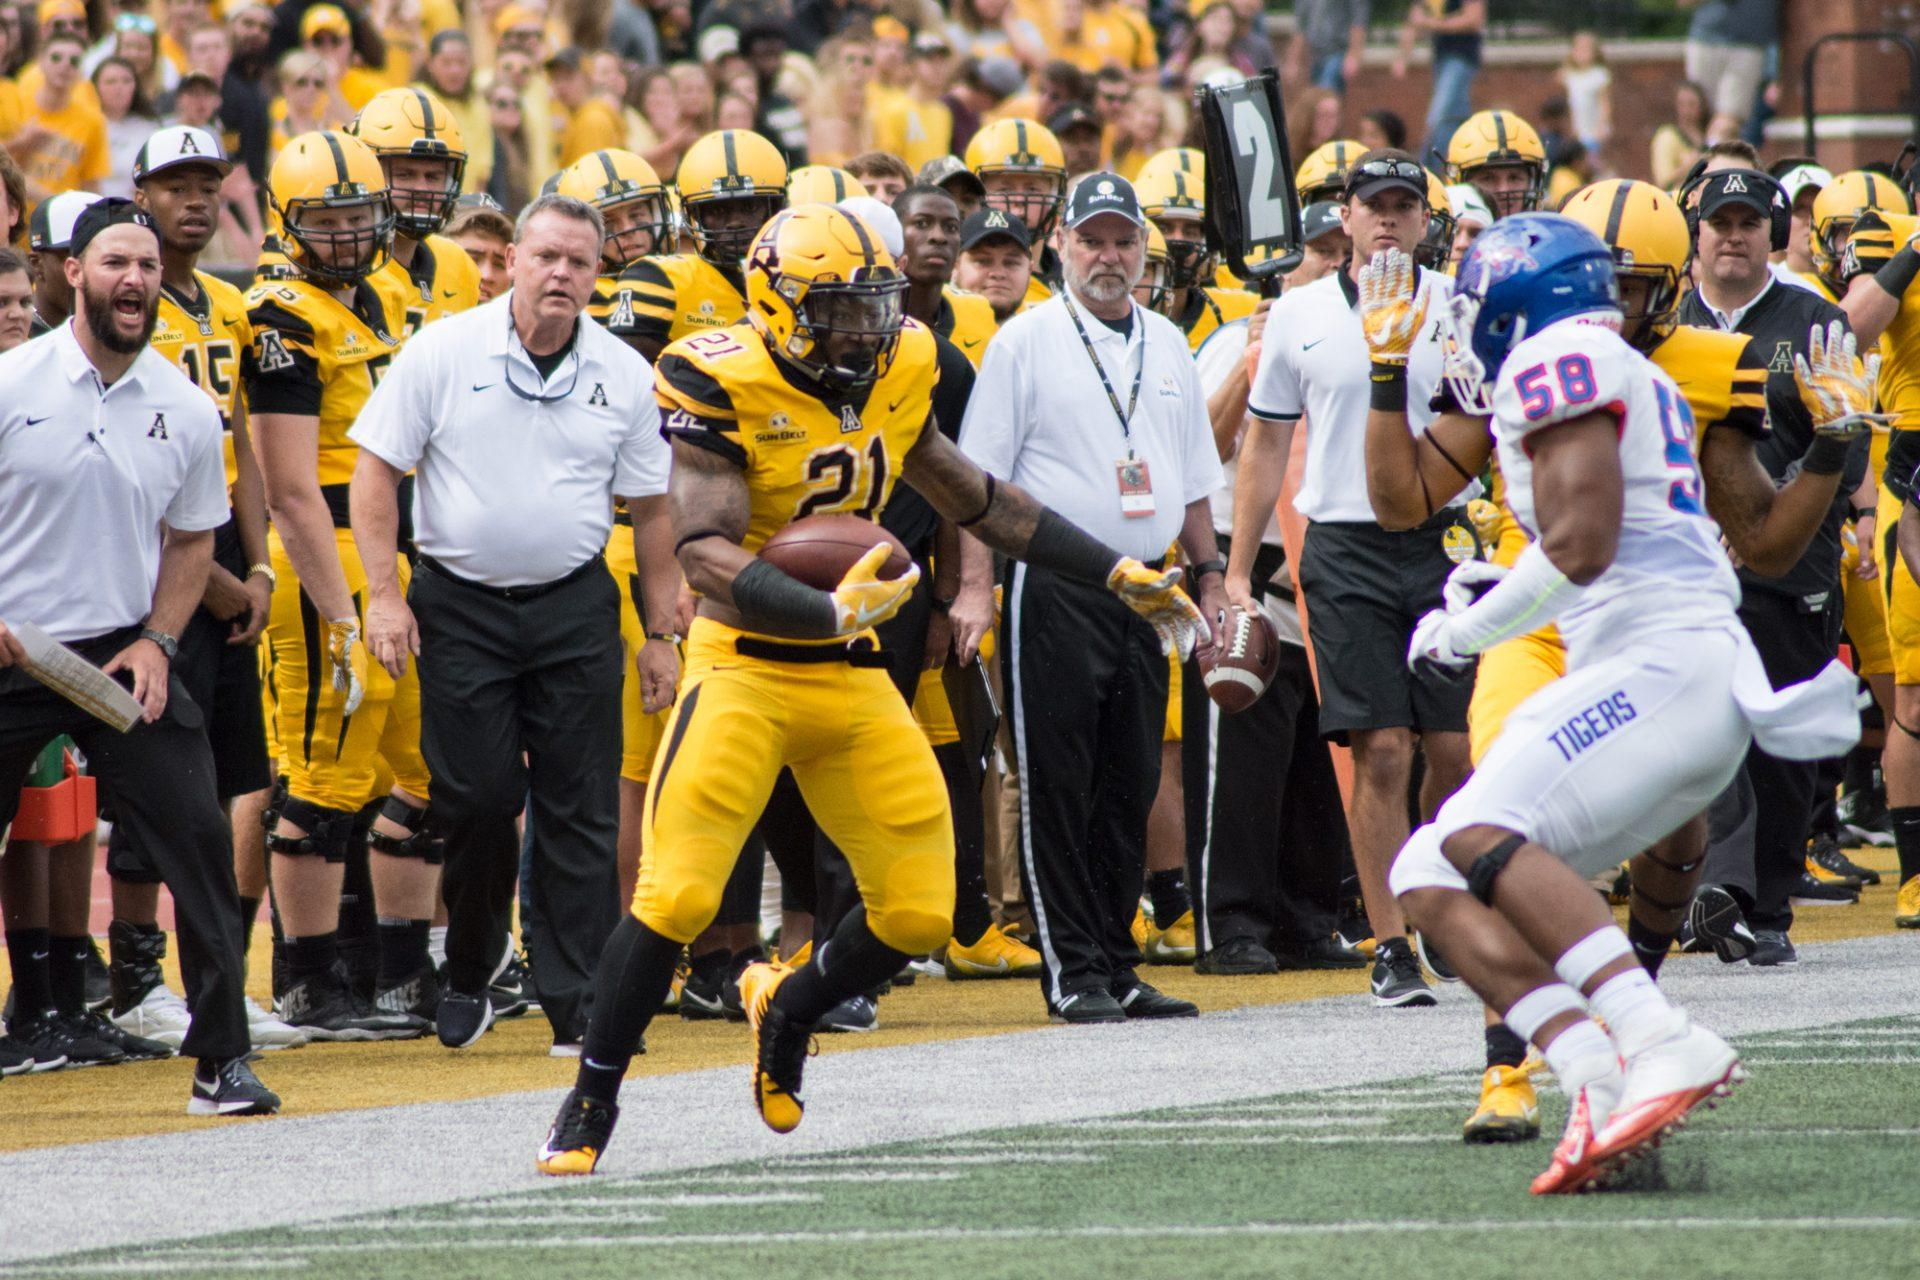 Bounce back year for Upshaw